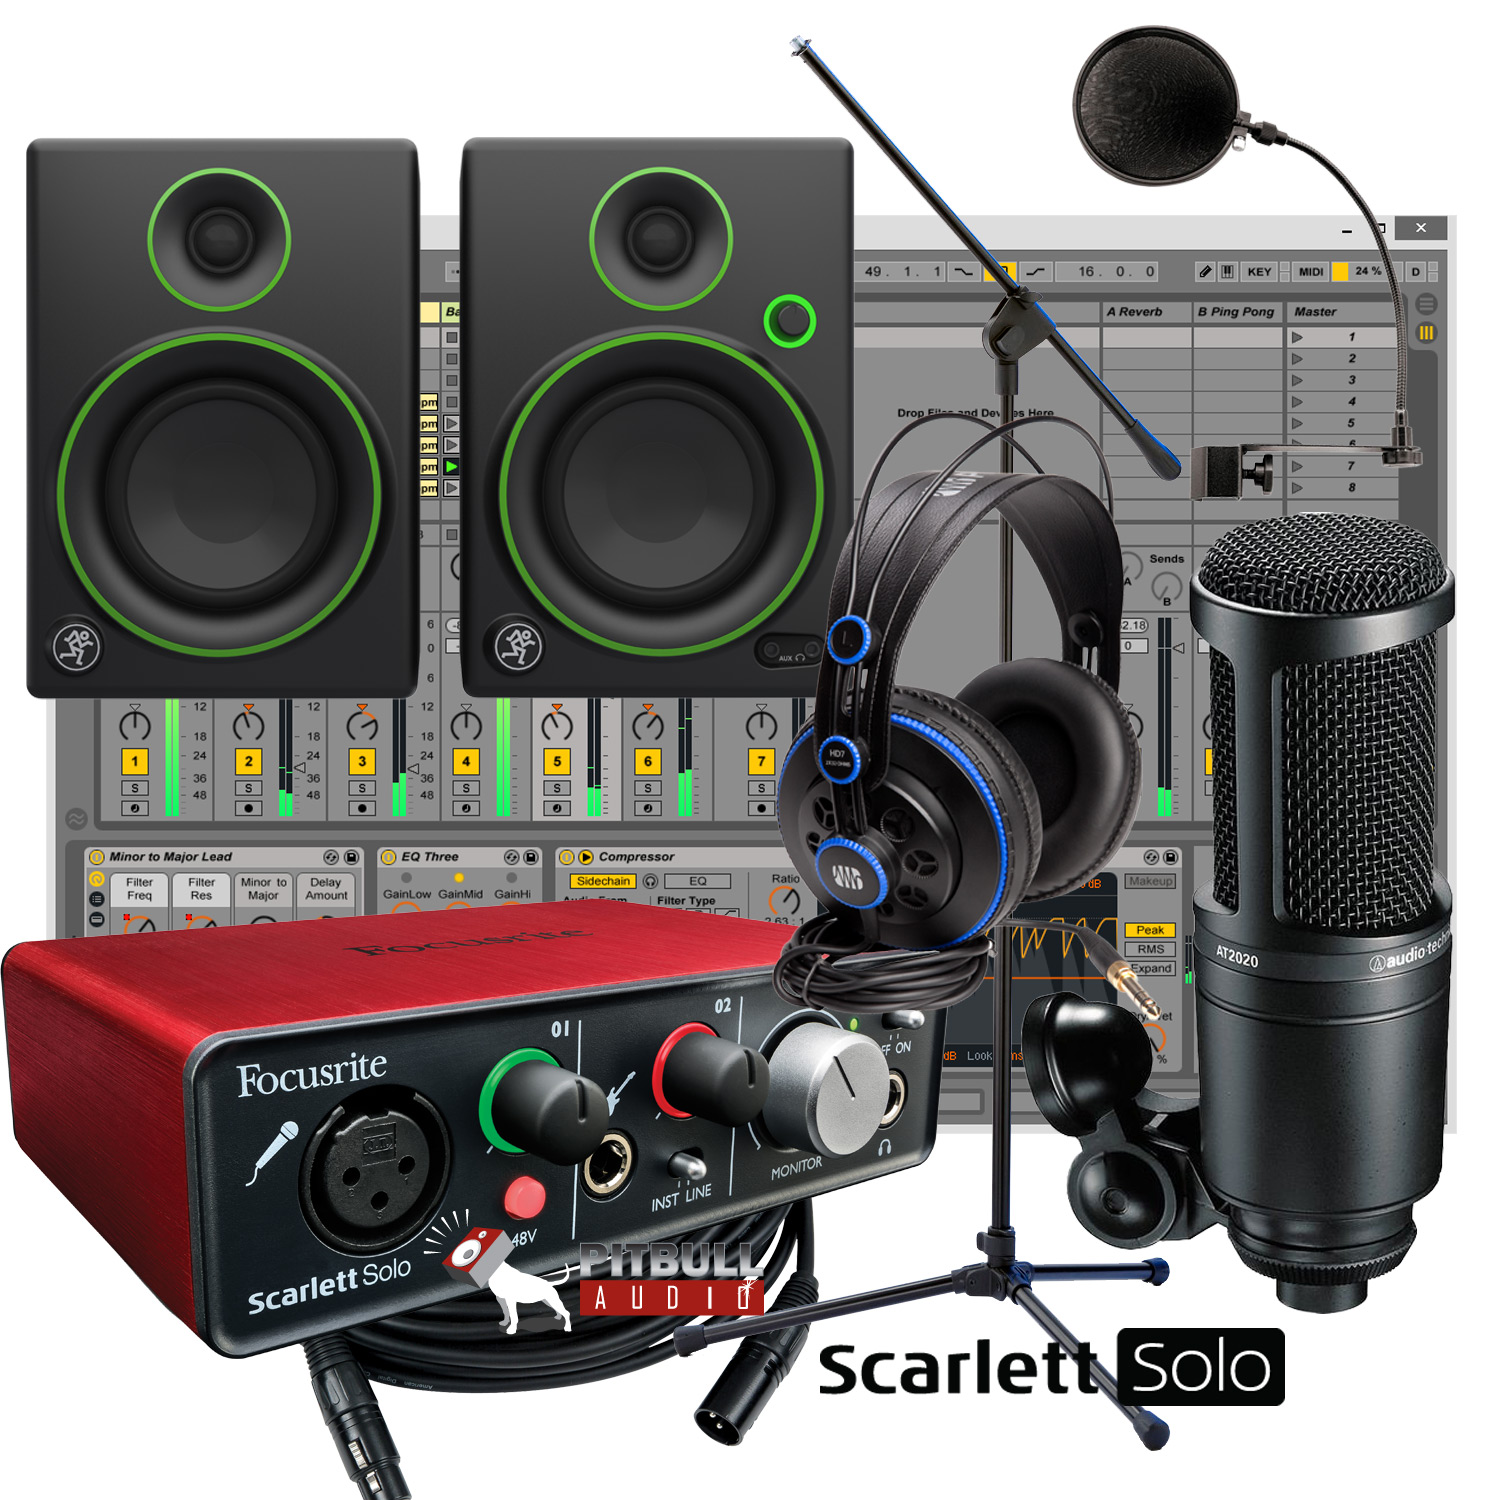 focusrite scarlett solo home recording studio bundle w mackie cr4 at 2020 mic ebay. Black Bedroom Furniture Sets. Home Design Ideas